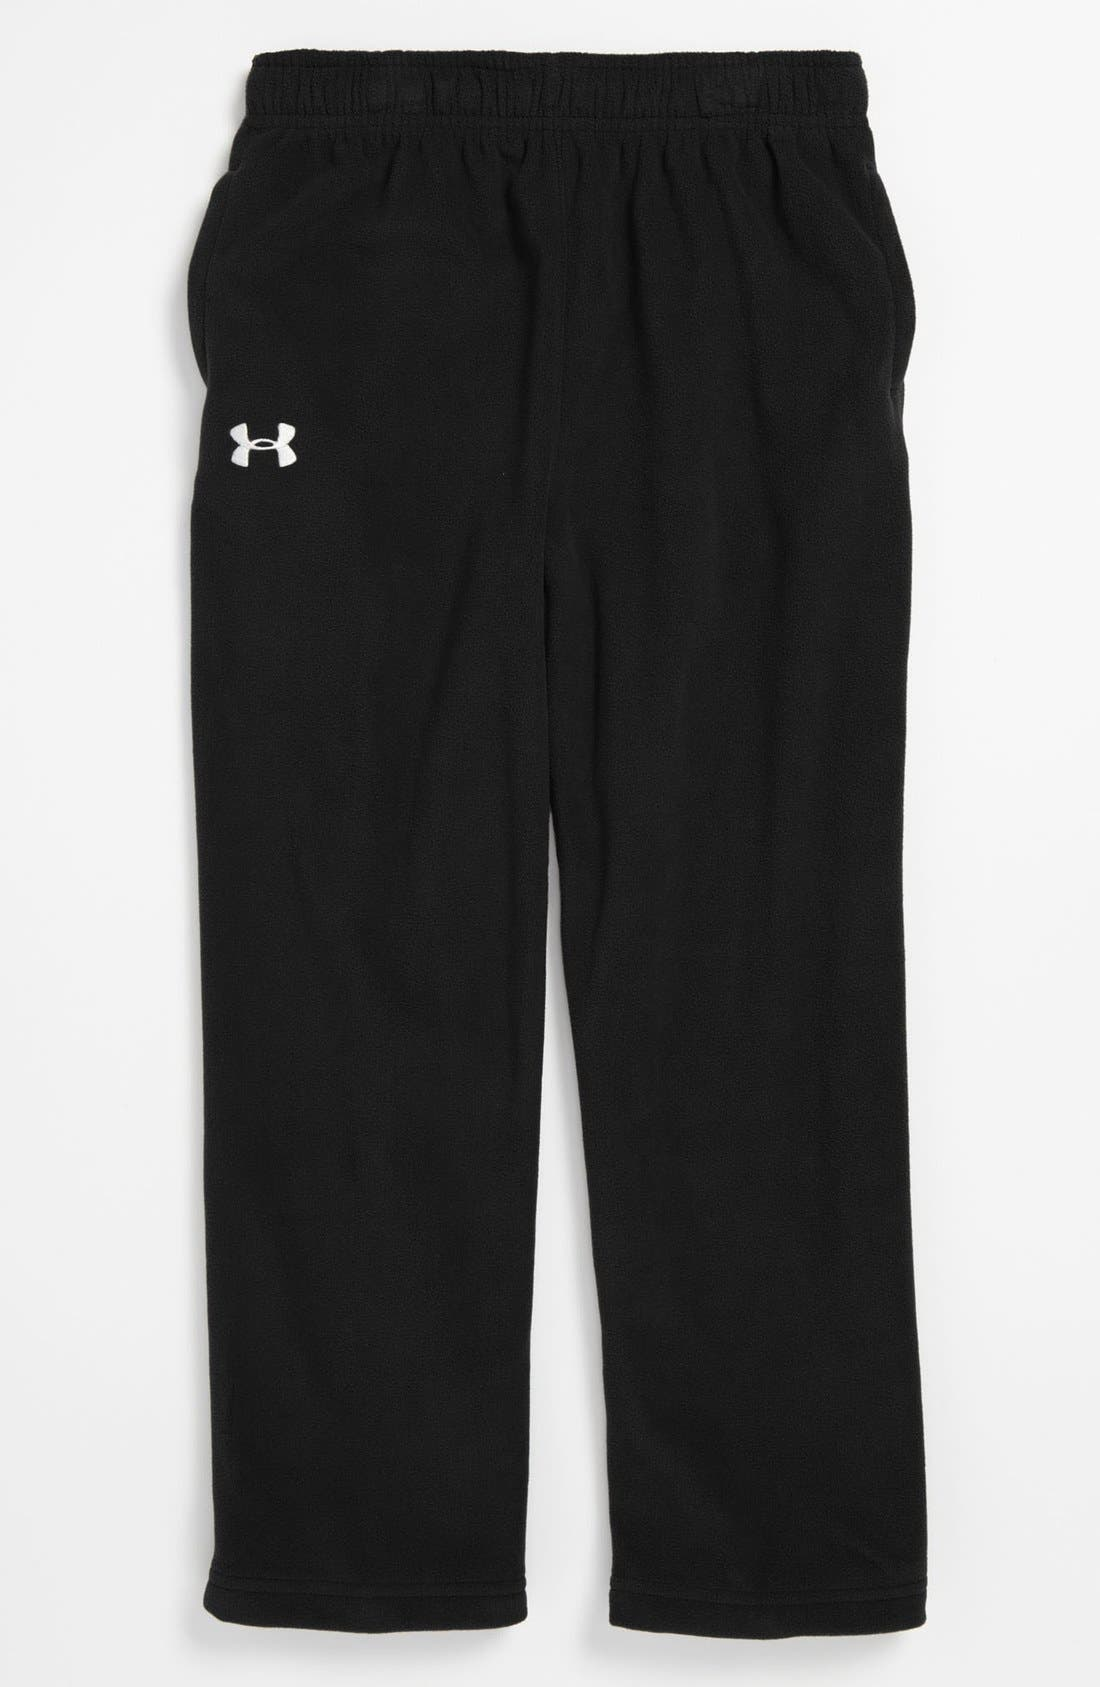 Alternate Image 1 Selected - Under Armour 'Hundo' Pants (Toddler)